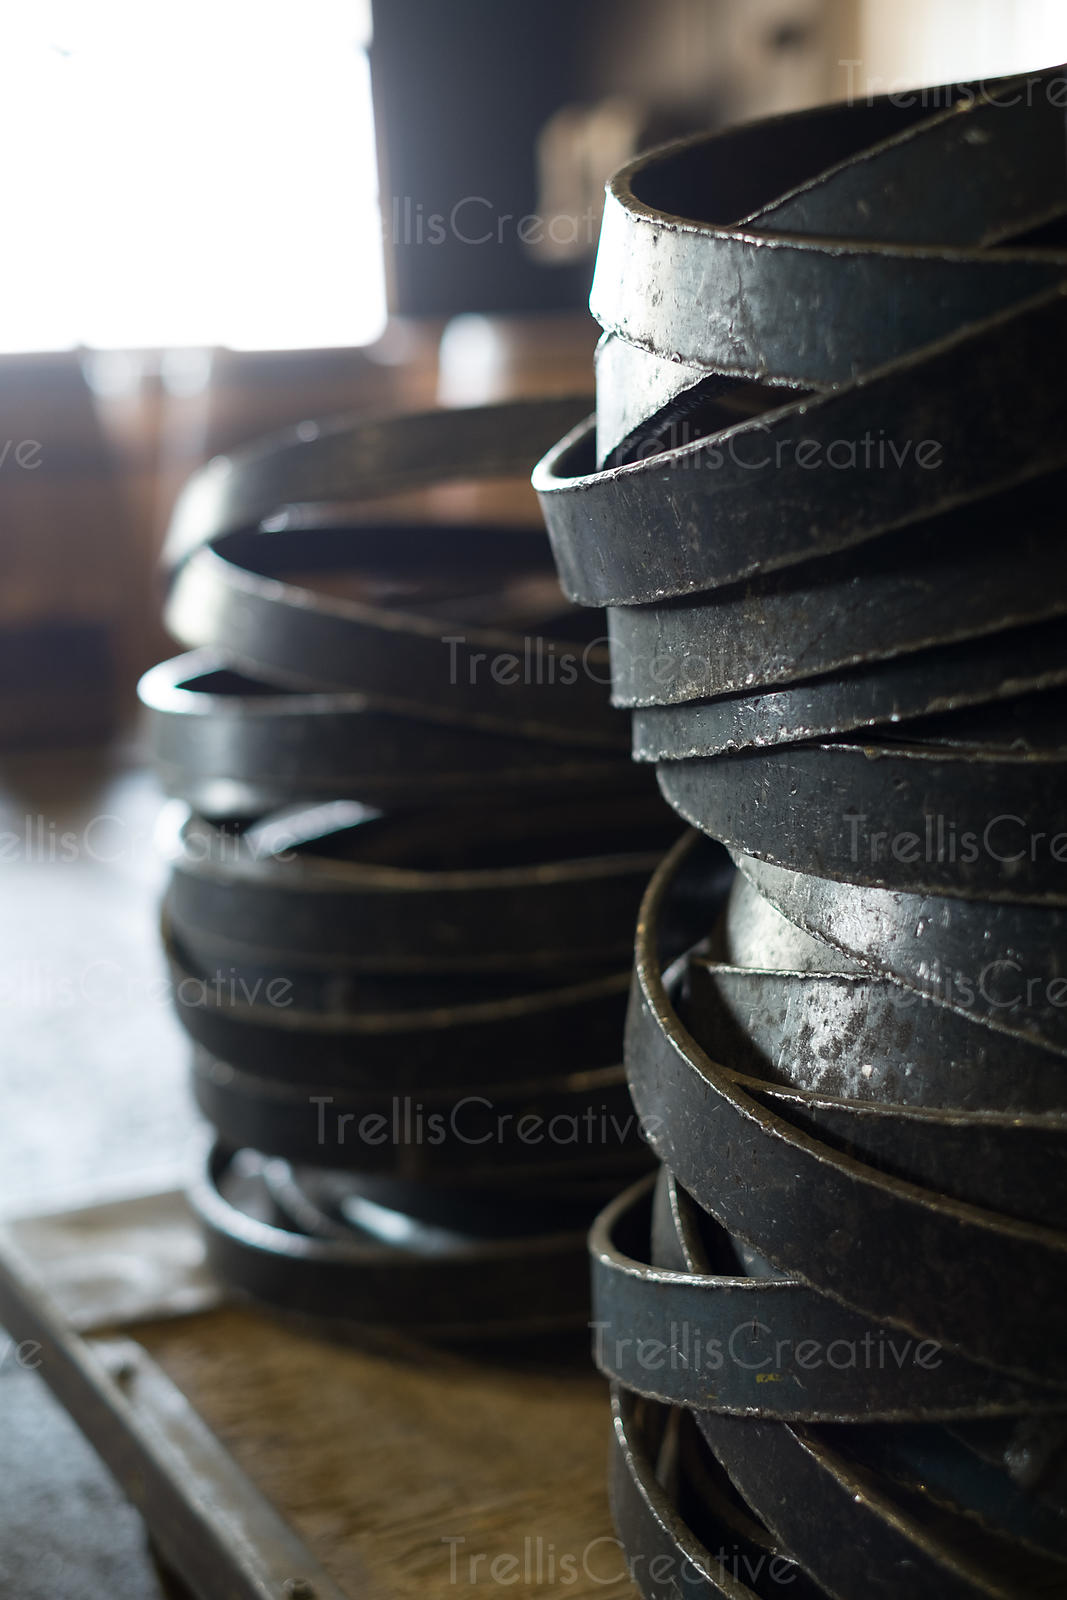 Stacks of iron barrel rings on a table.